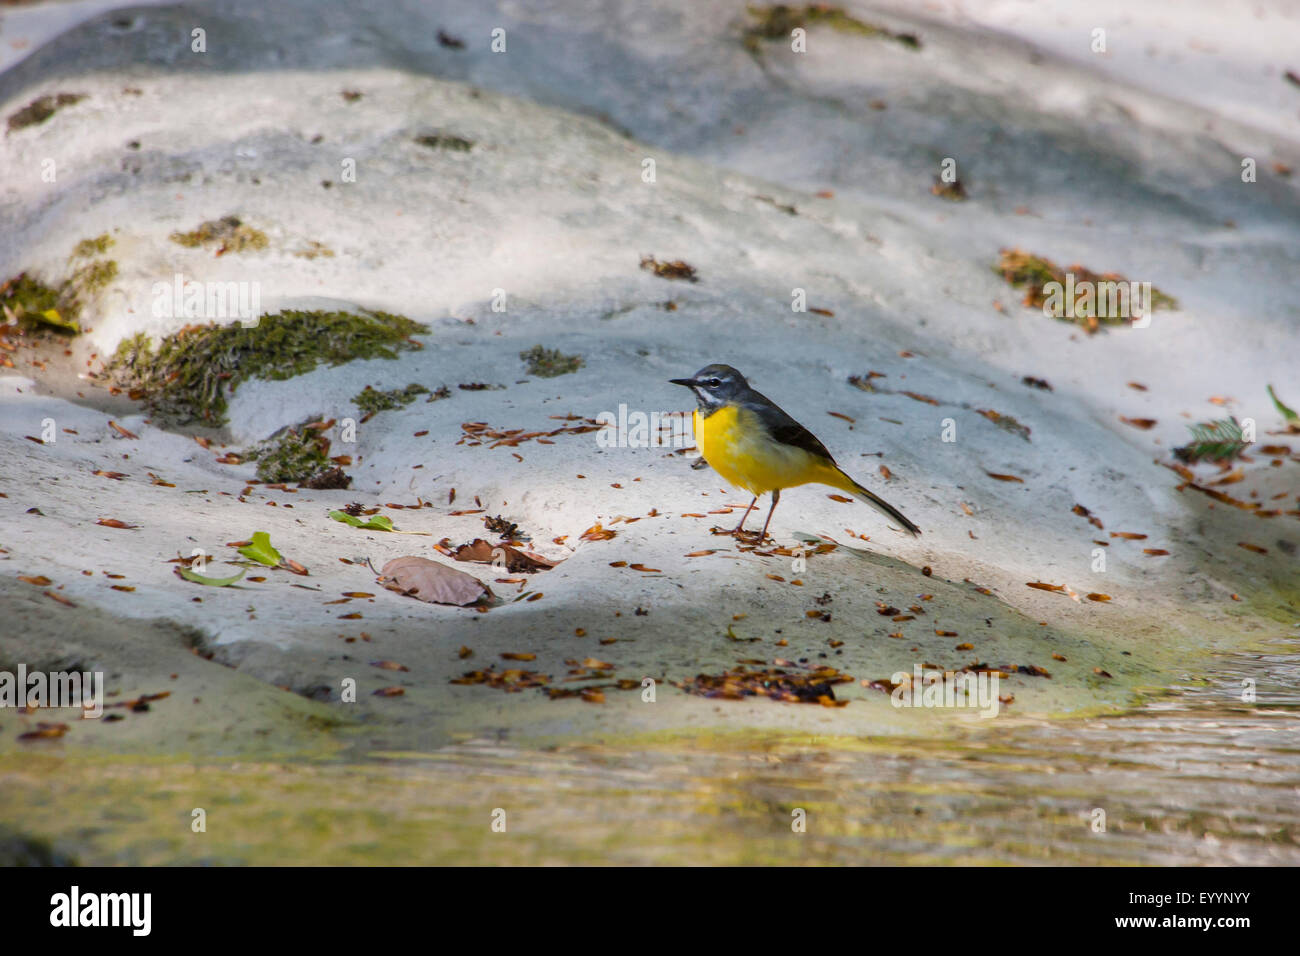 grey wagtail (Motacilla cinerea), searching food at a brookside, Switzerland, Sankt Gallen - Stock Image